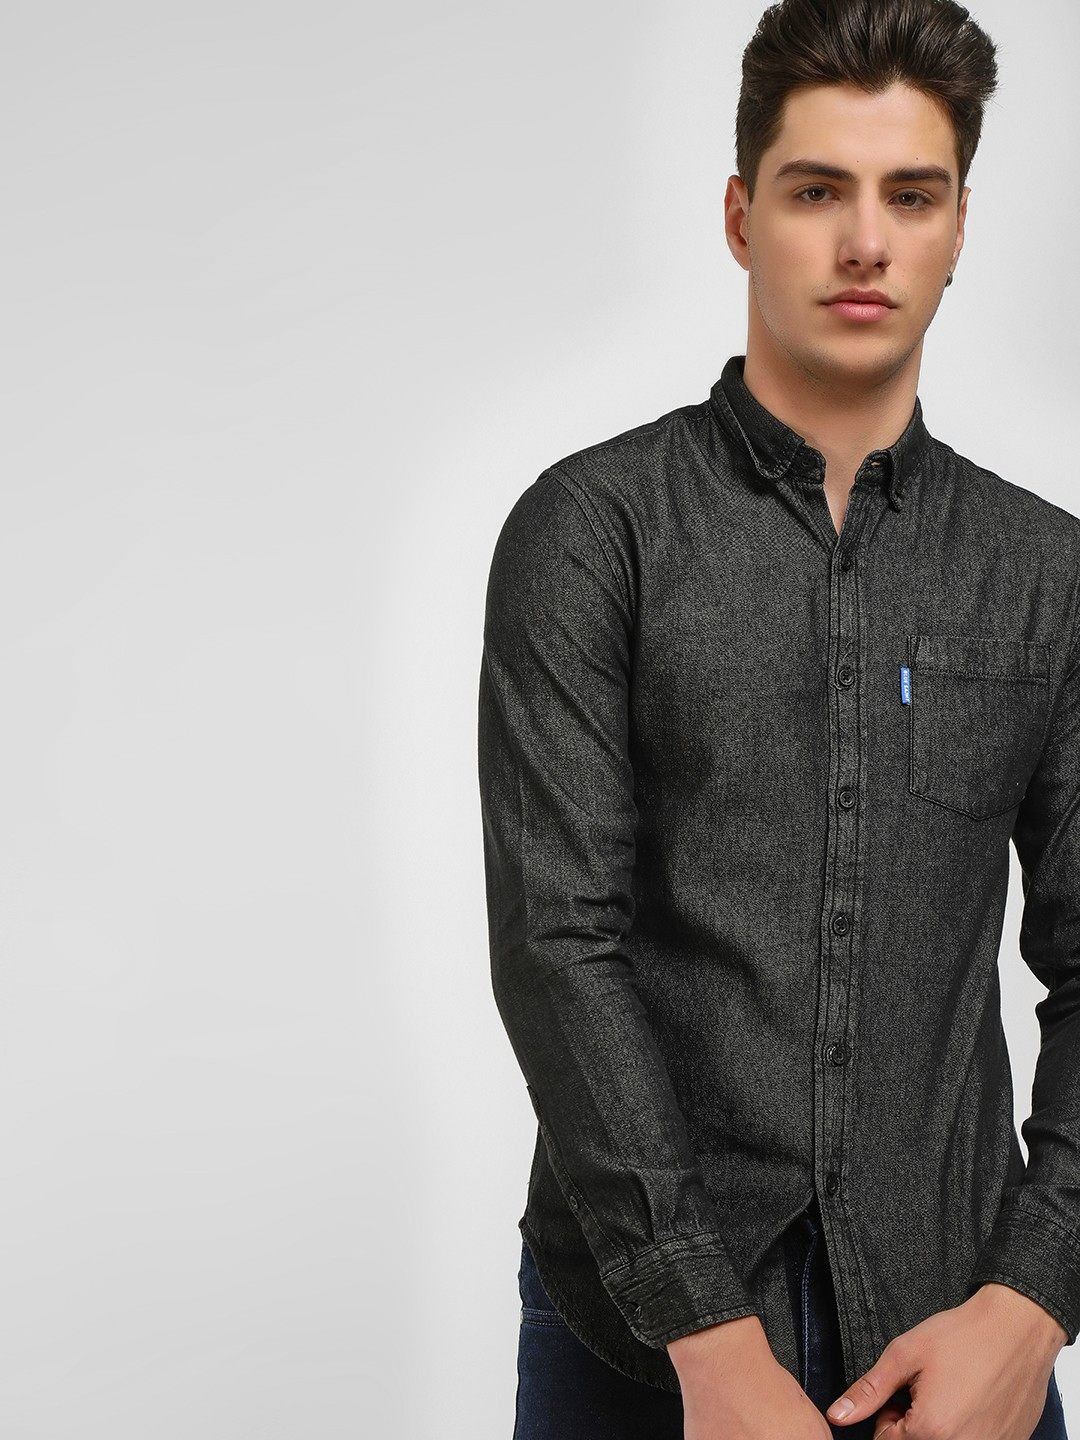 Blue Saint Black Button Down Denim Shirt 1